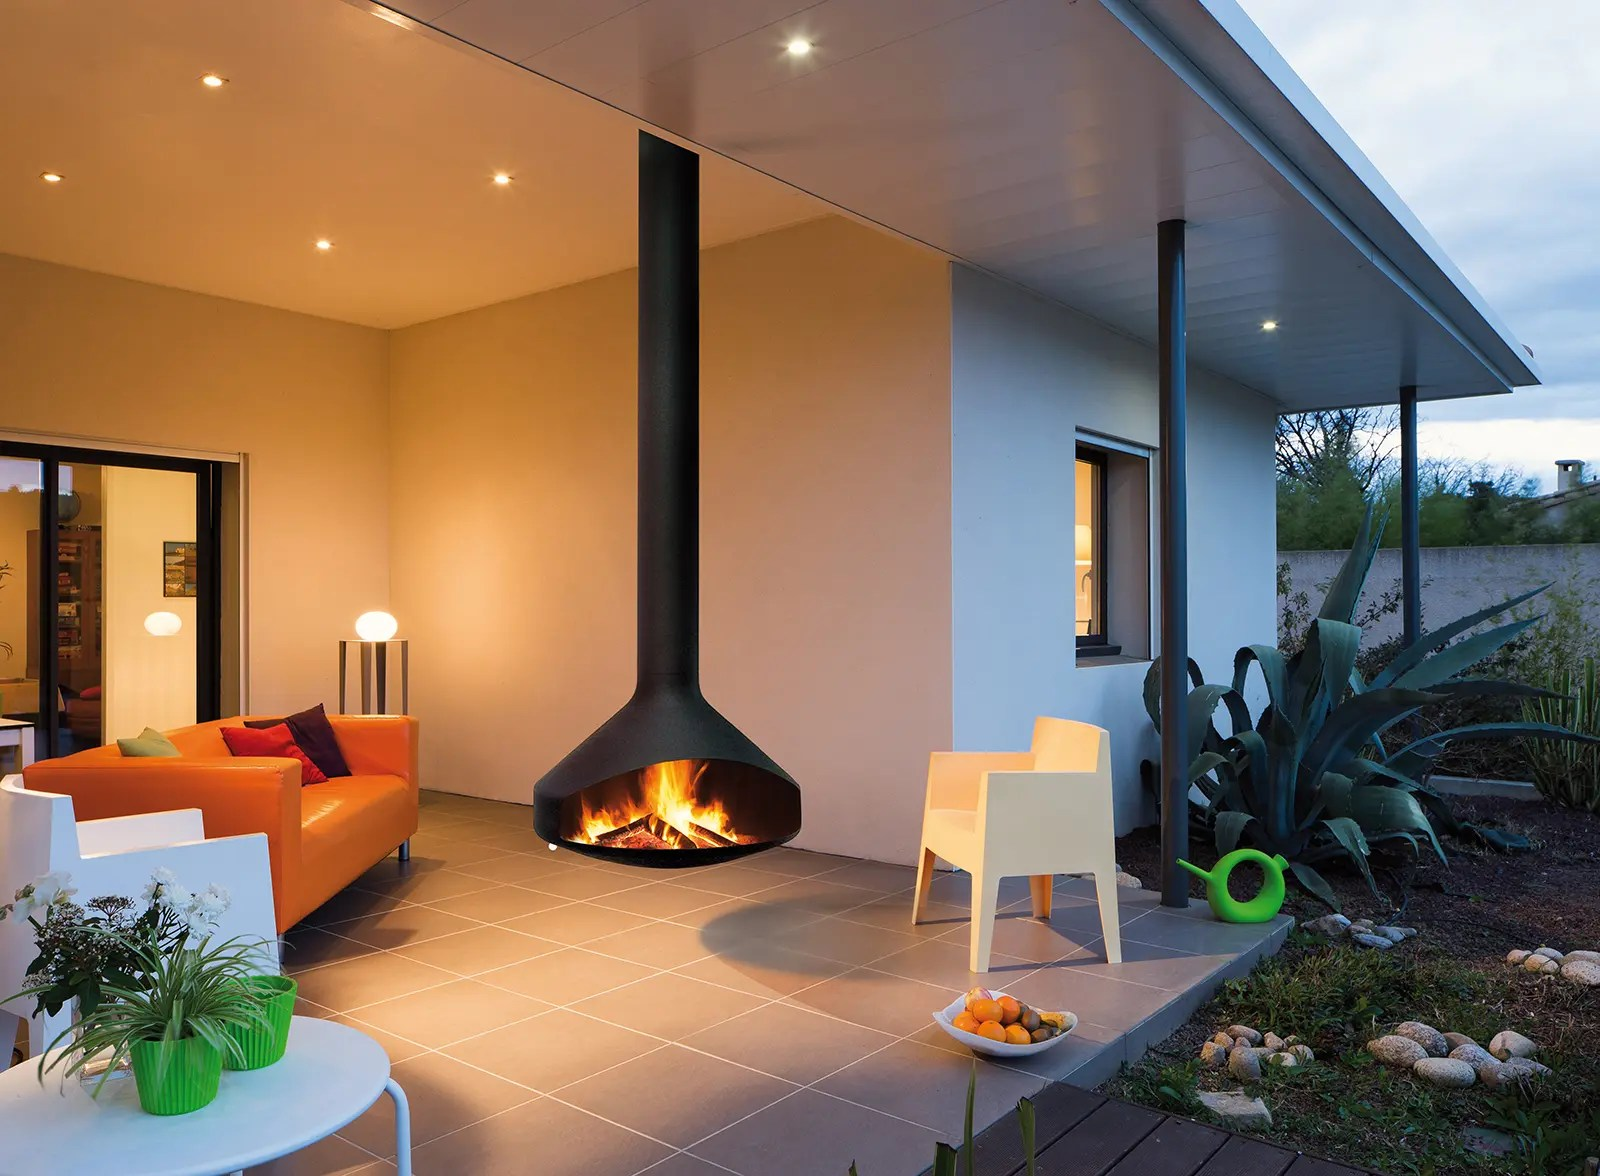 Cheminee Outdoor Ergofocus By Focus Fires Suspended Open Faced Fireplace